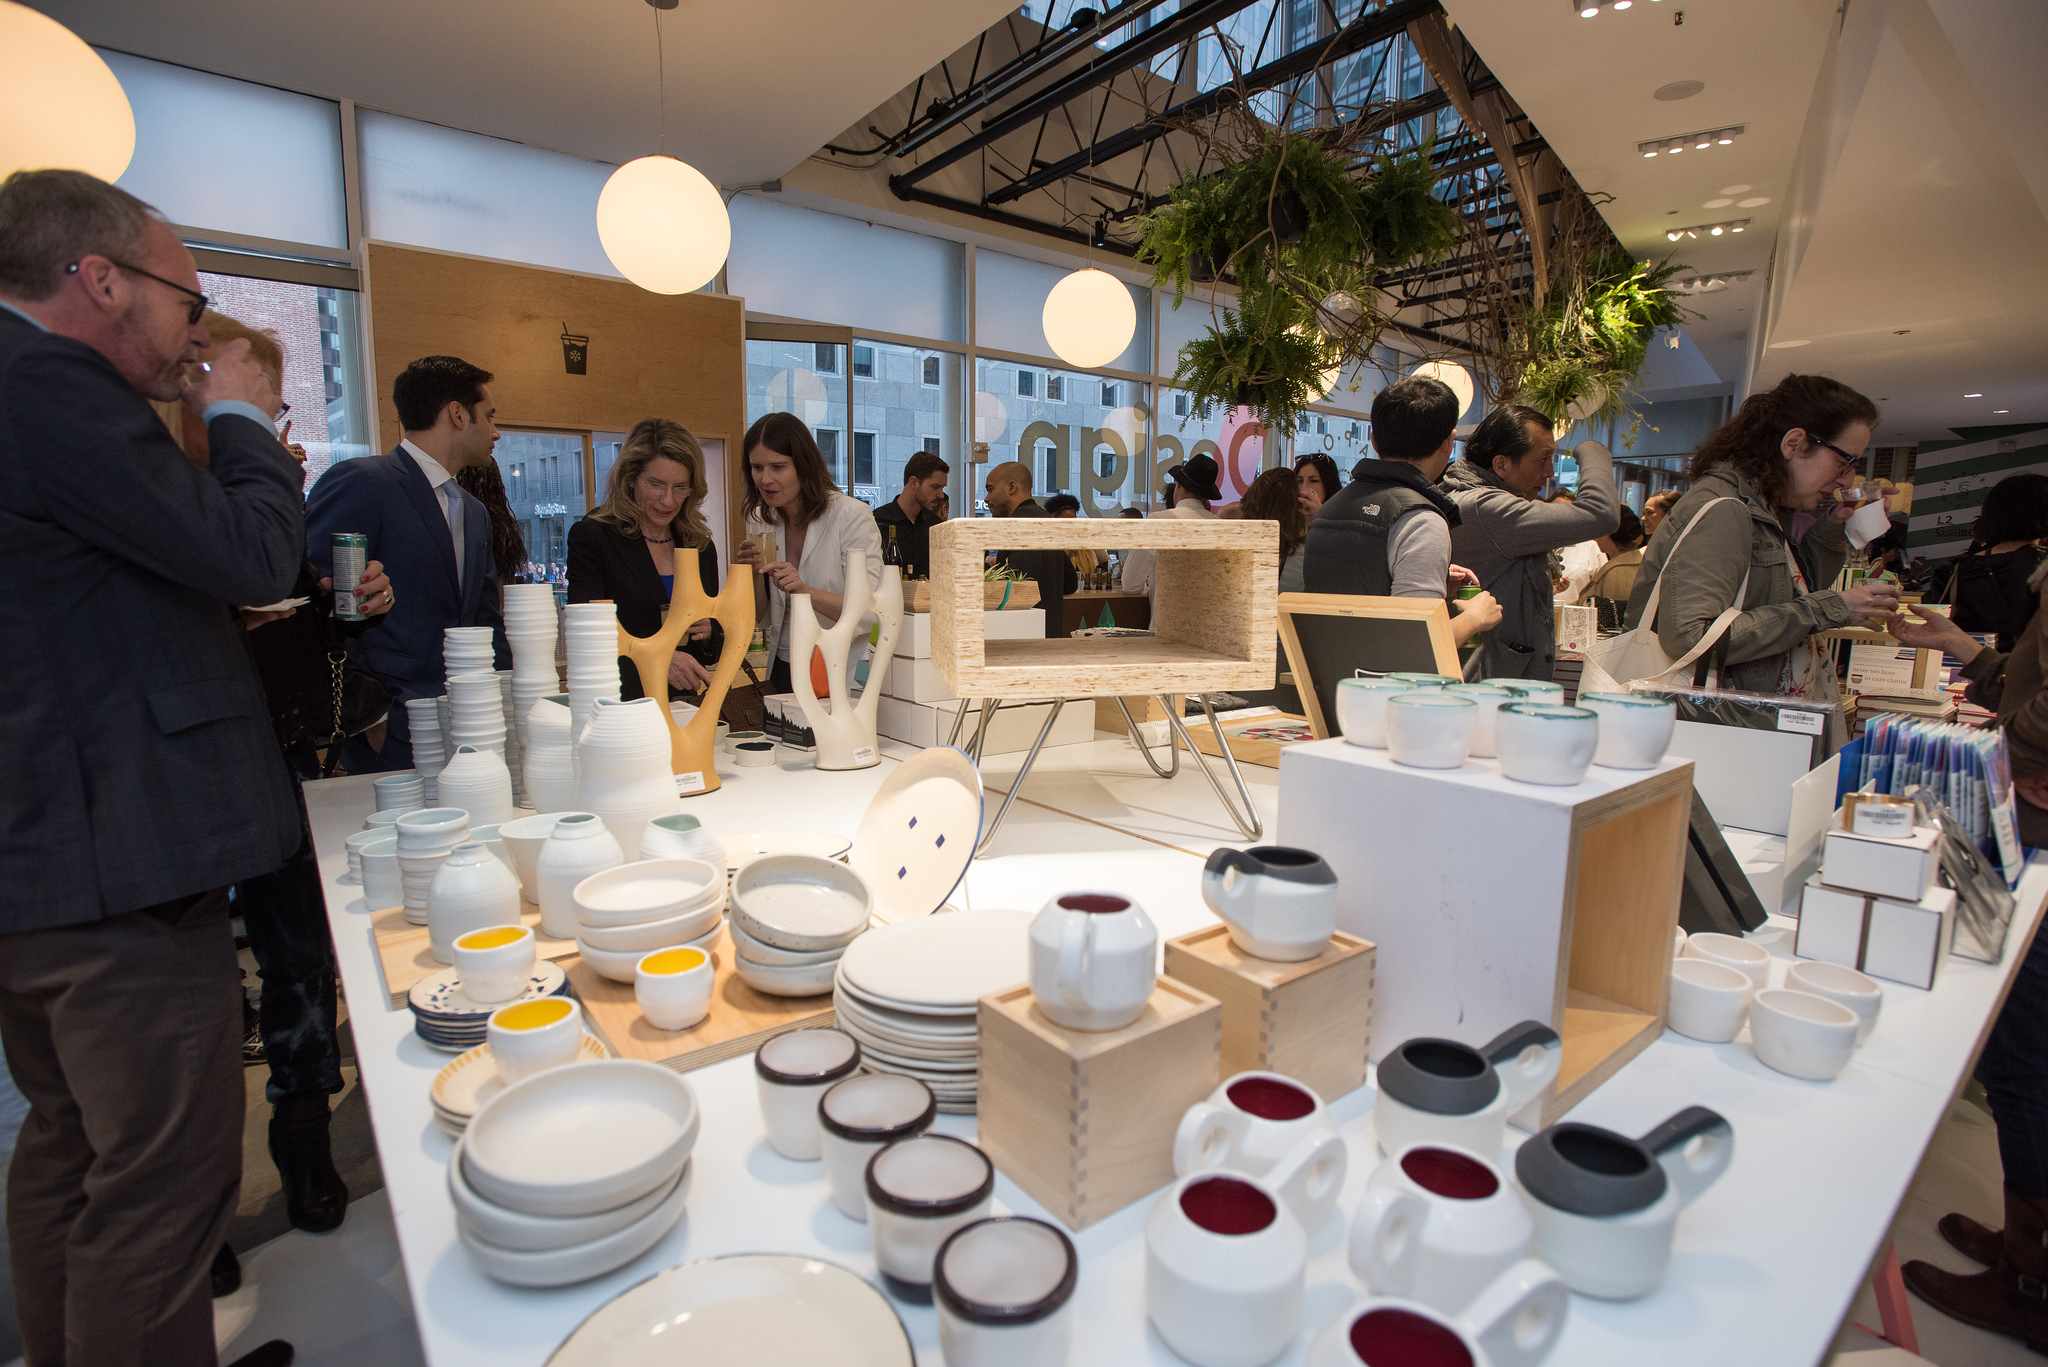 NYCXDESIGN Downtown Design May 9 2016 C Julienne Schaer